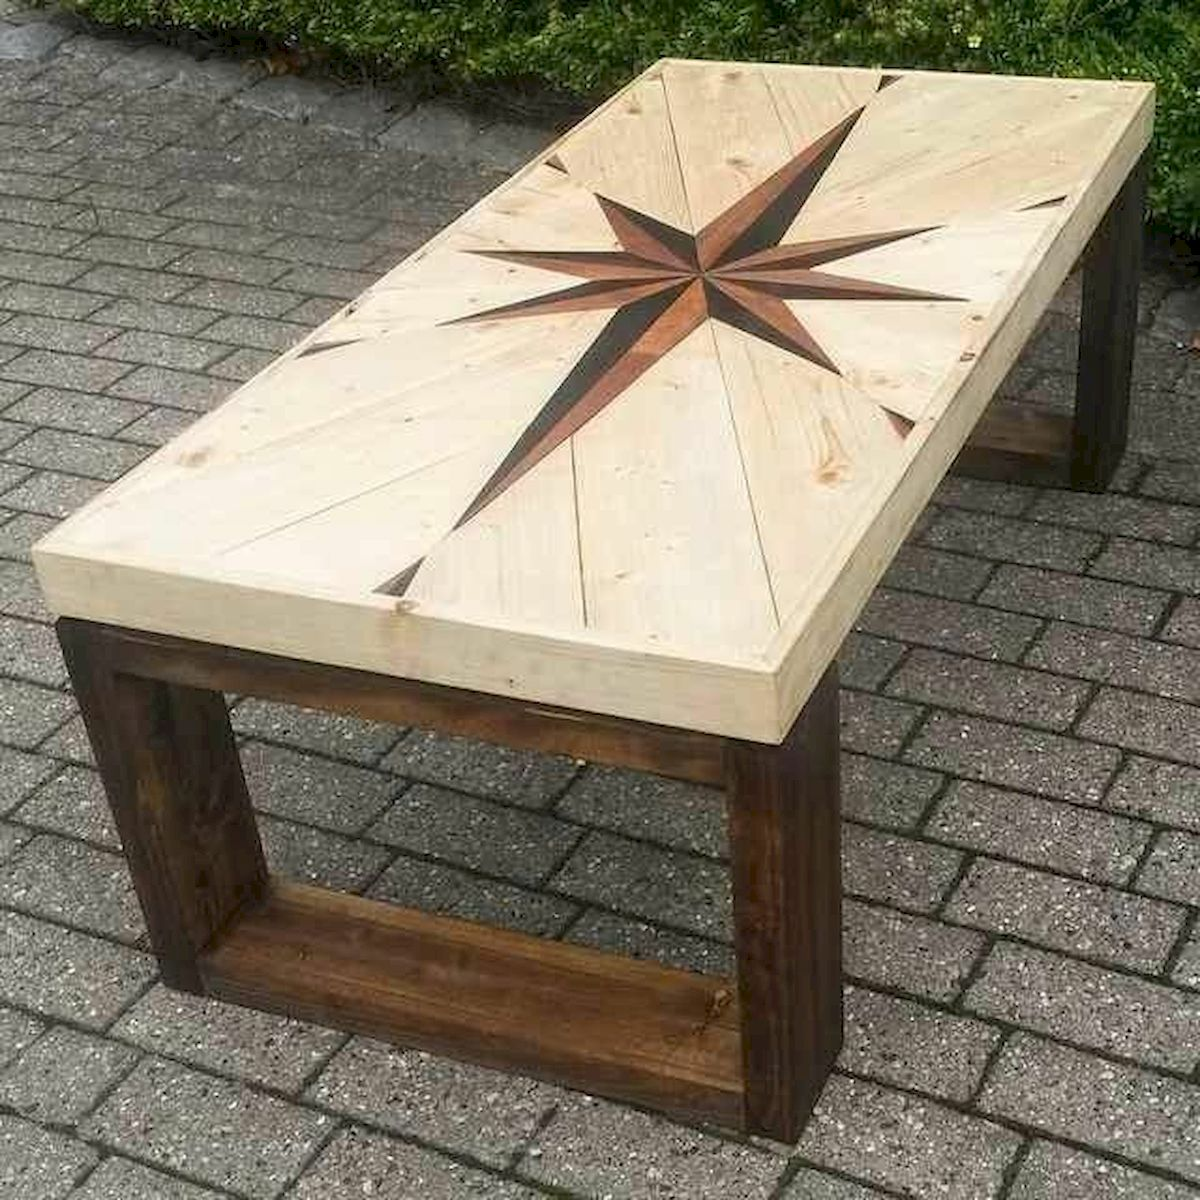 60 Easy DIY Wood Furniture Projects Ideas (18)